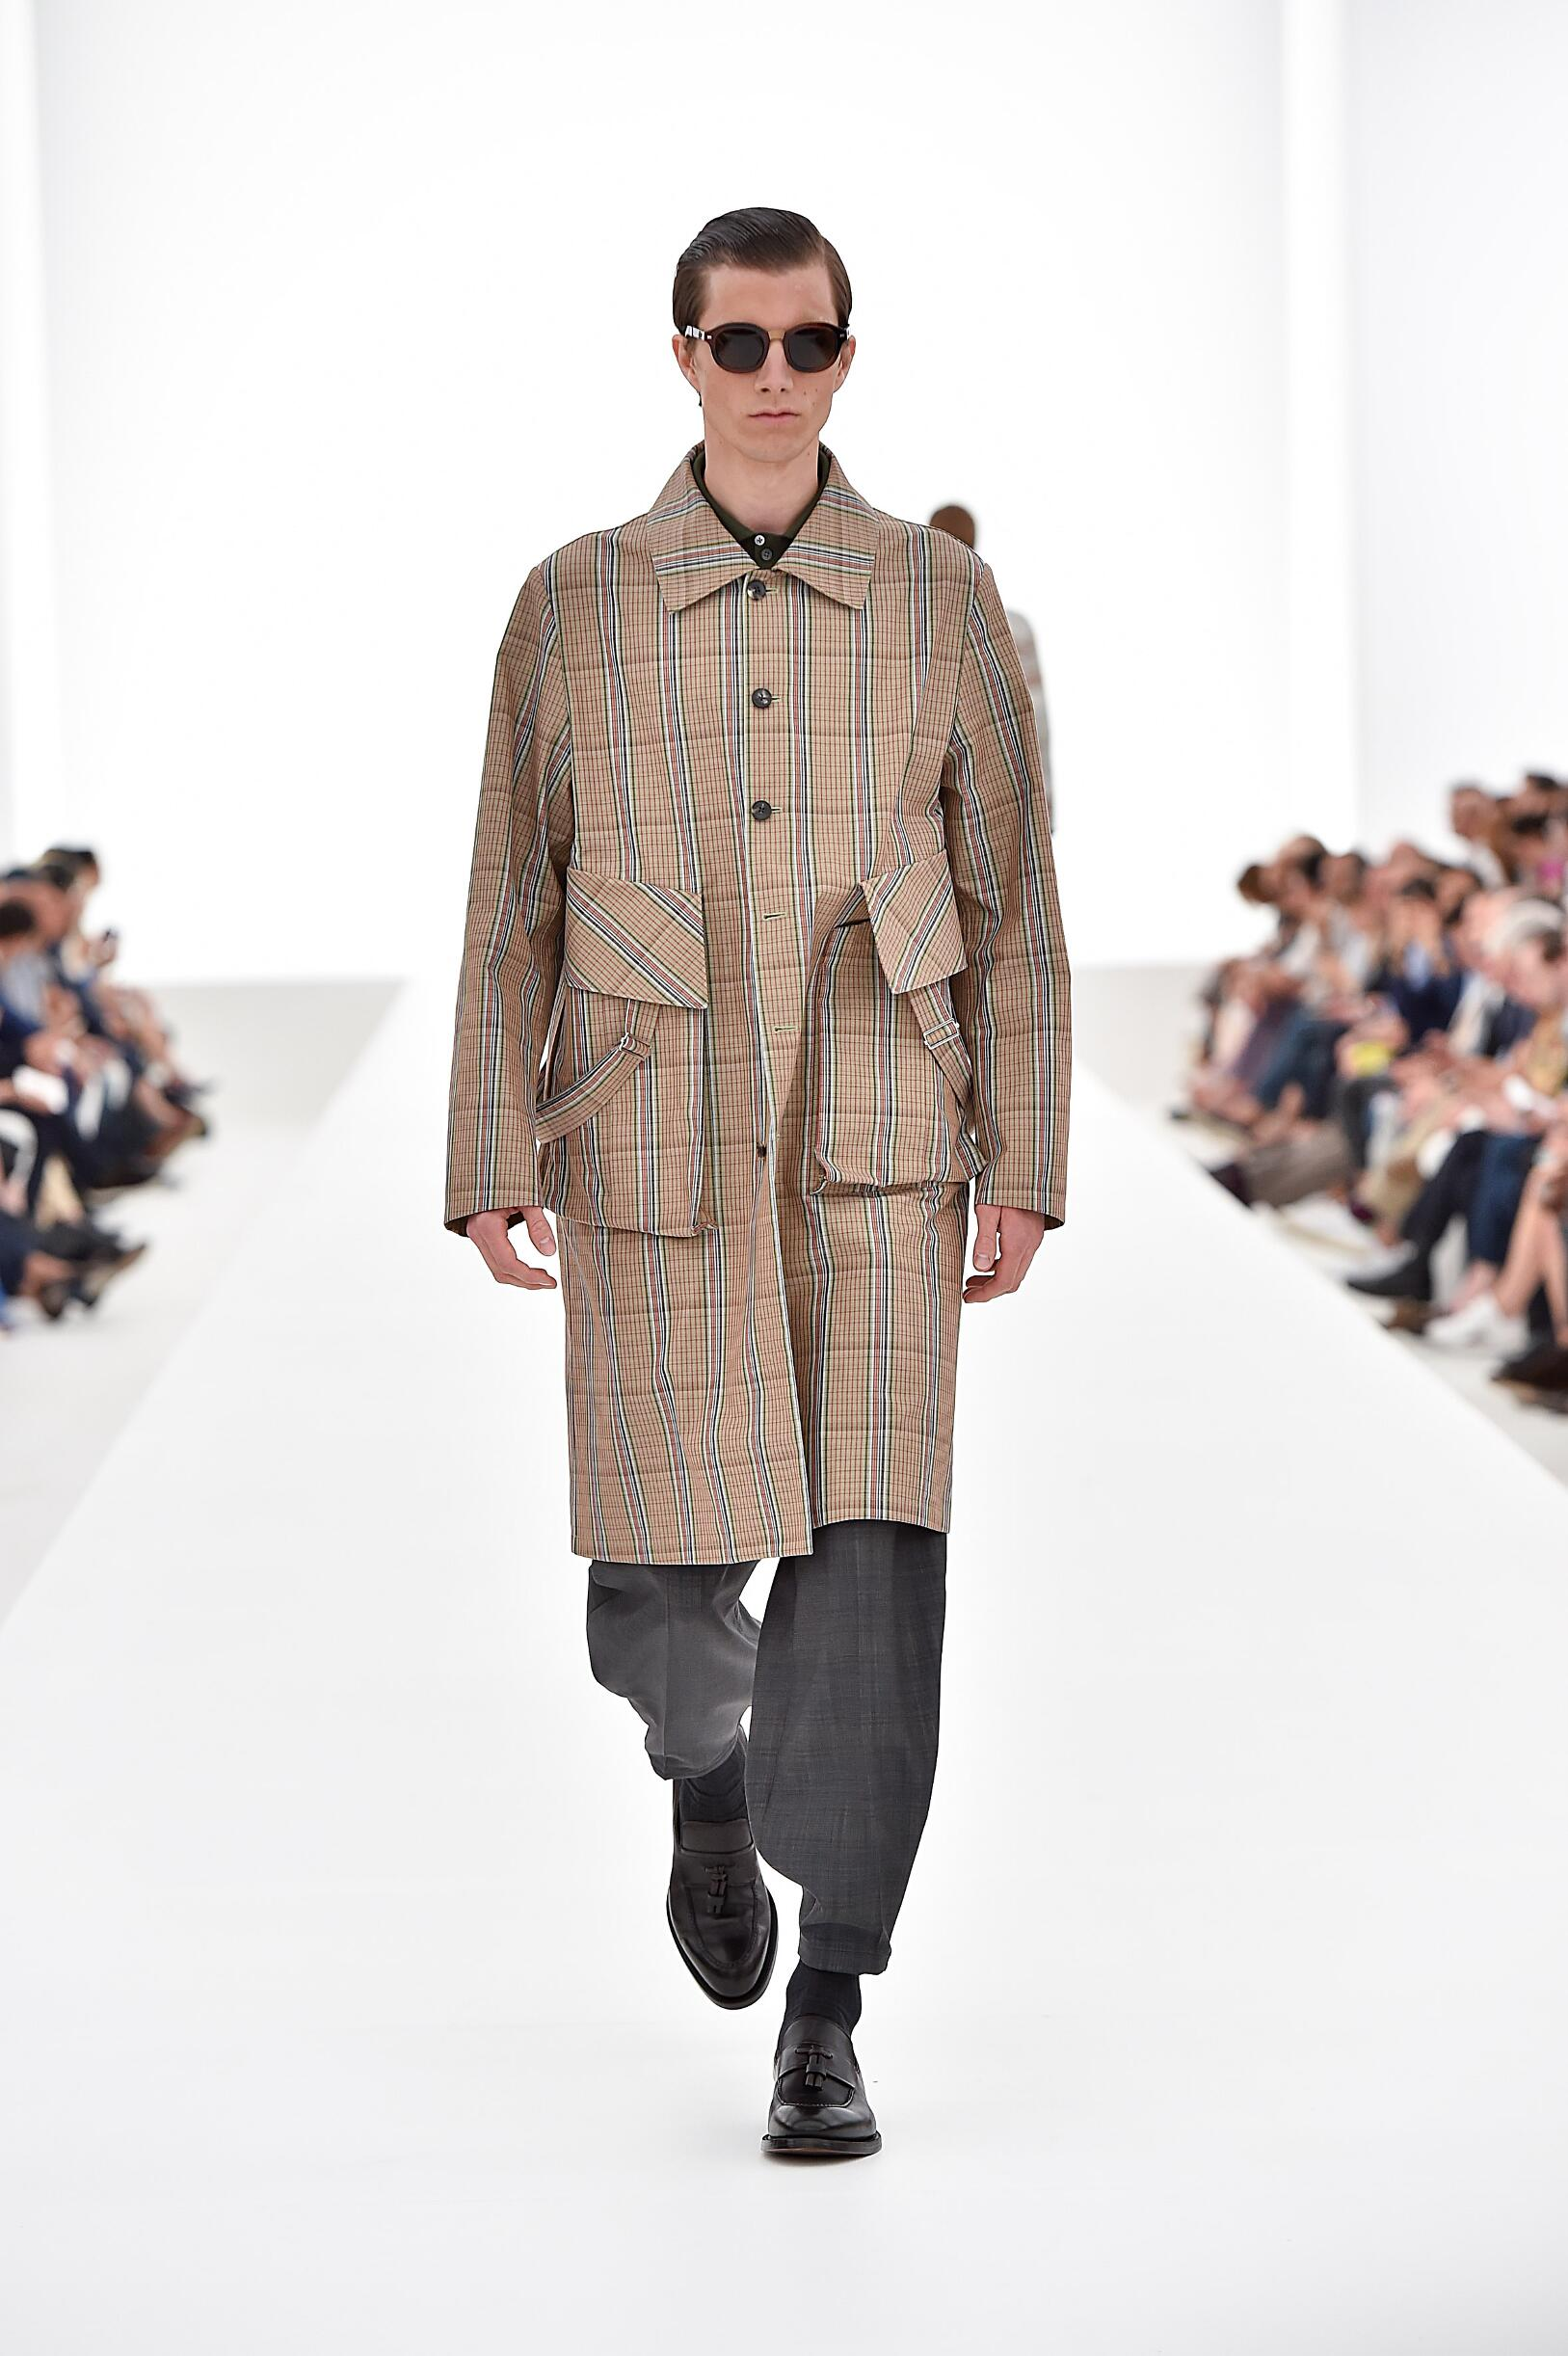 Ermenegildo Zegna Couture Collection Summer 2016 Catwalk